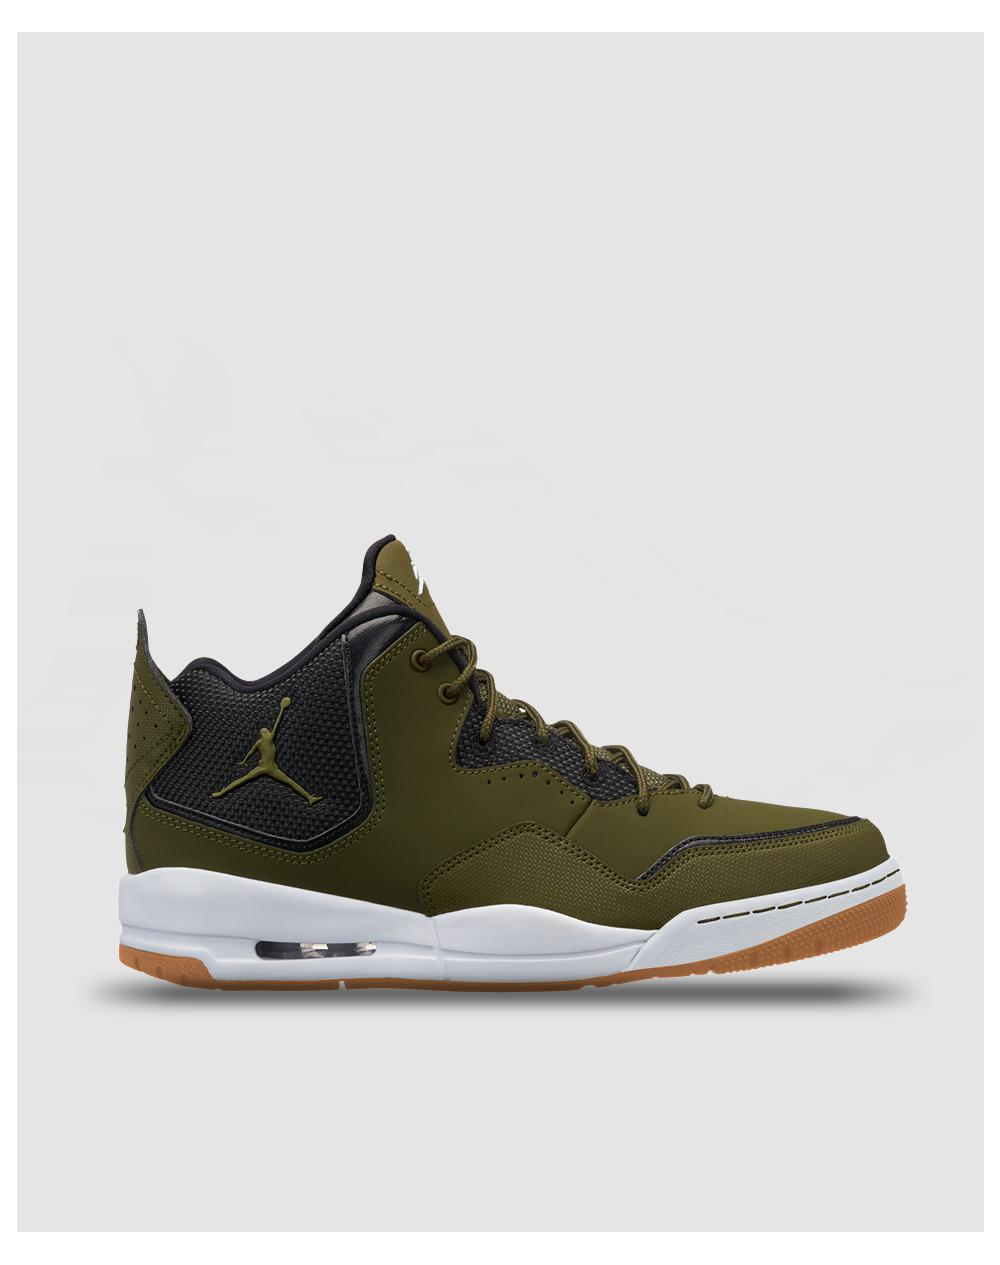 Lyst - Nike Jordan Courtside 23 Casual Trainers in Green for Men 236dcc7e6